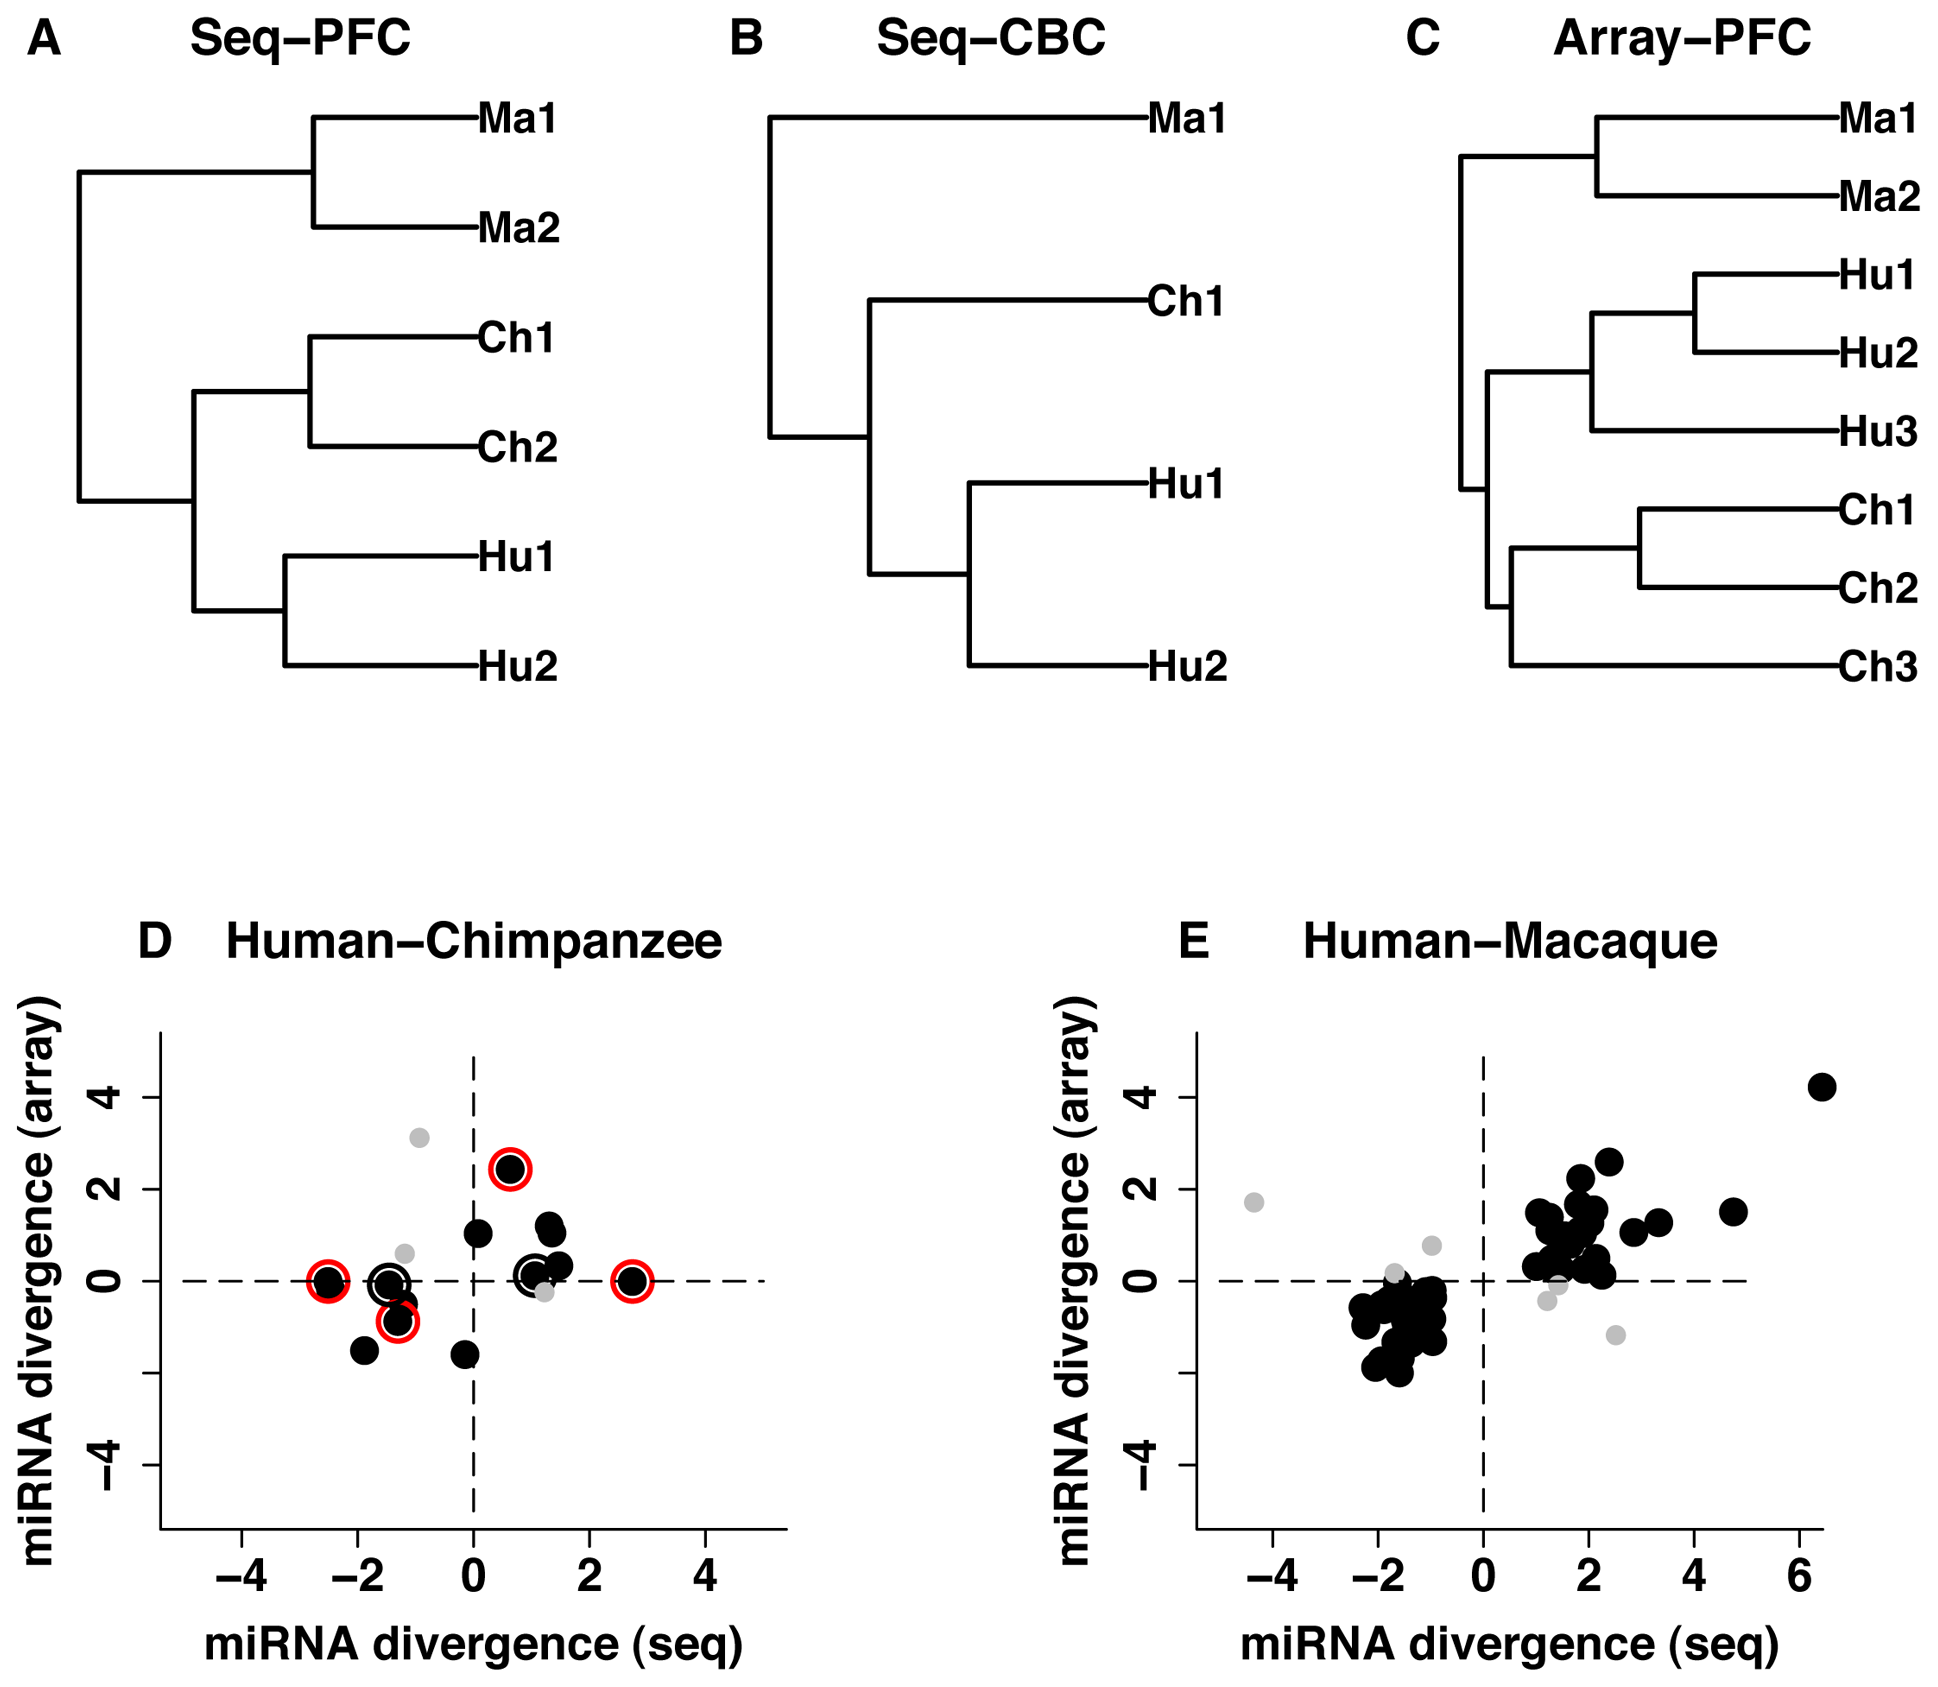 miRNA expression divergence among species and between two brain regions.